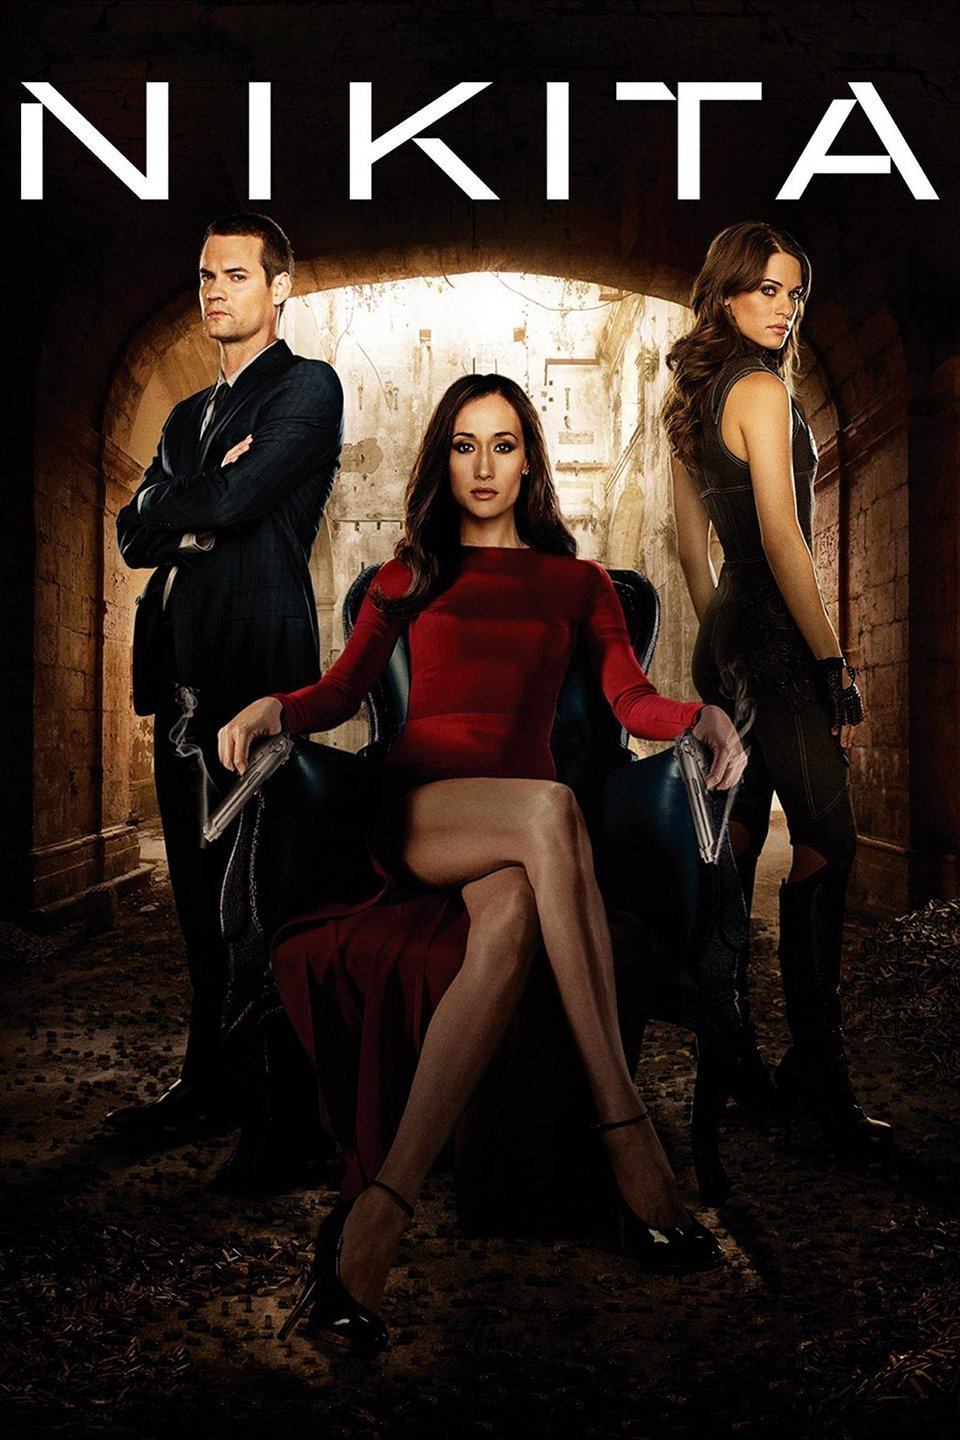 Nikita Season 3 - Nikita 3 (2012) Episode 1